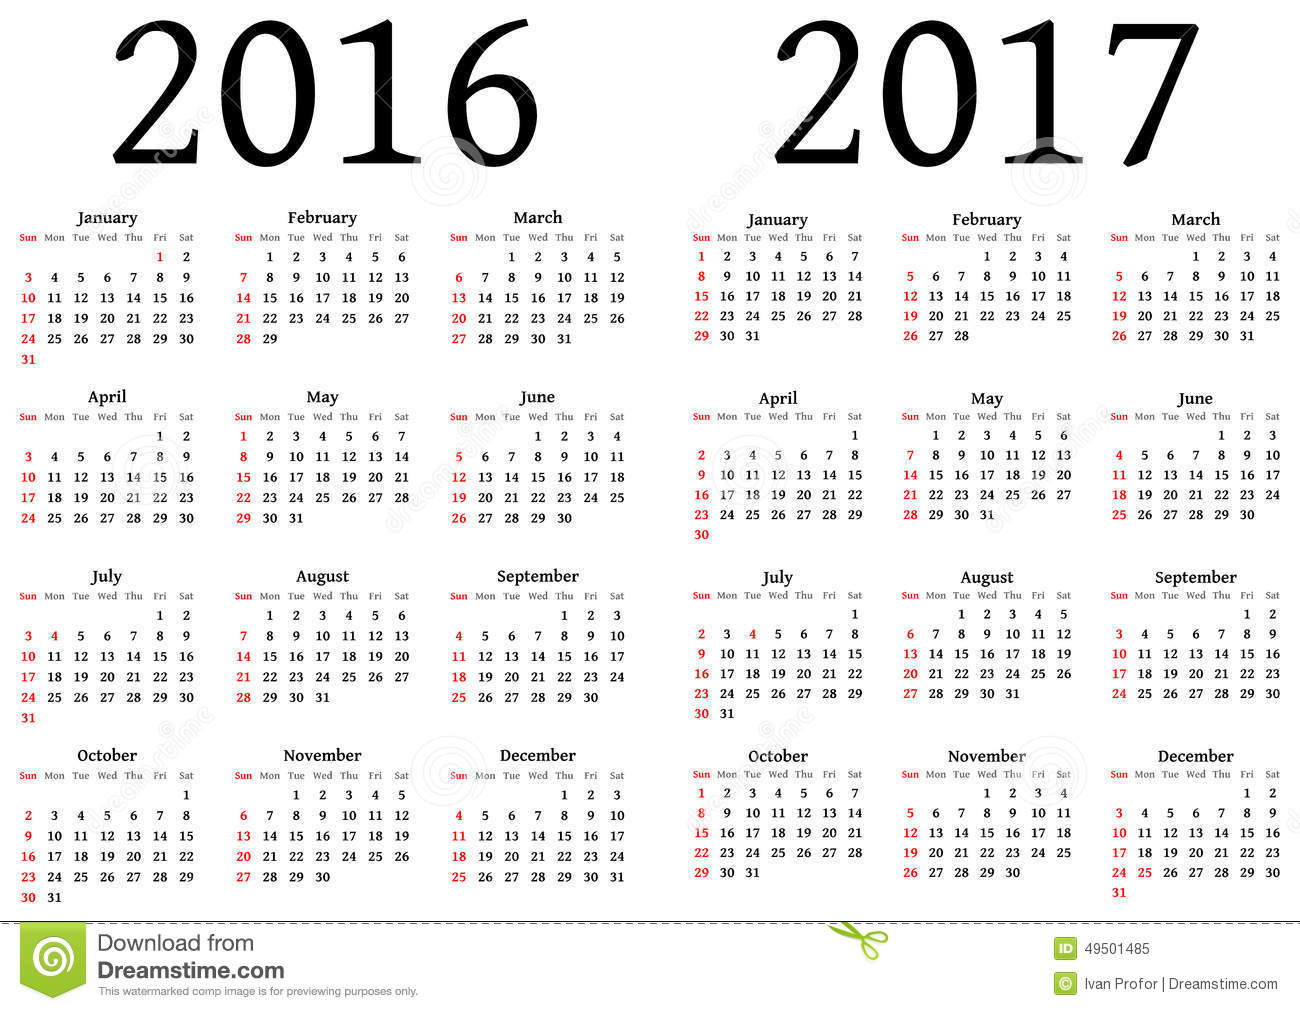 Calendar For 2016 And 2017 Stock Vector Illustration Of